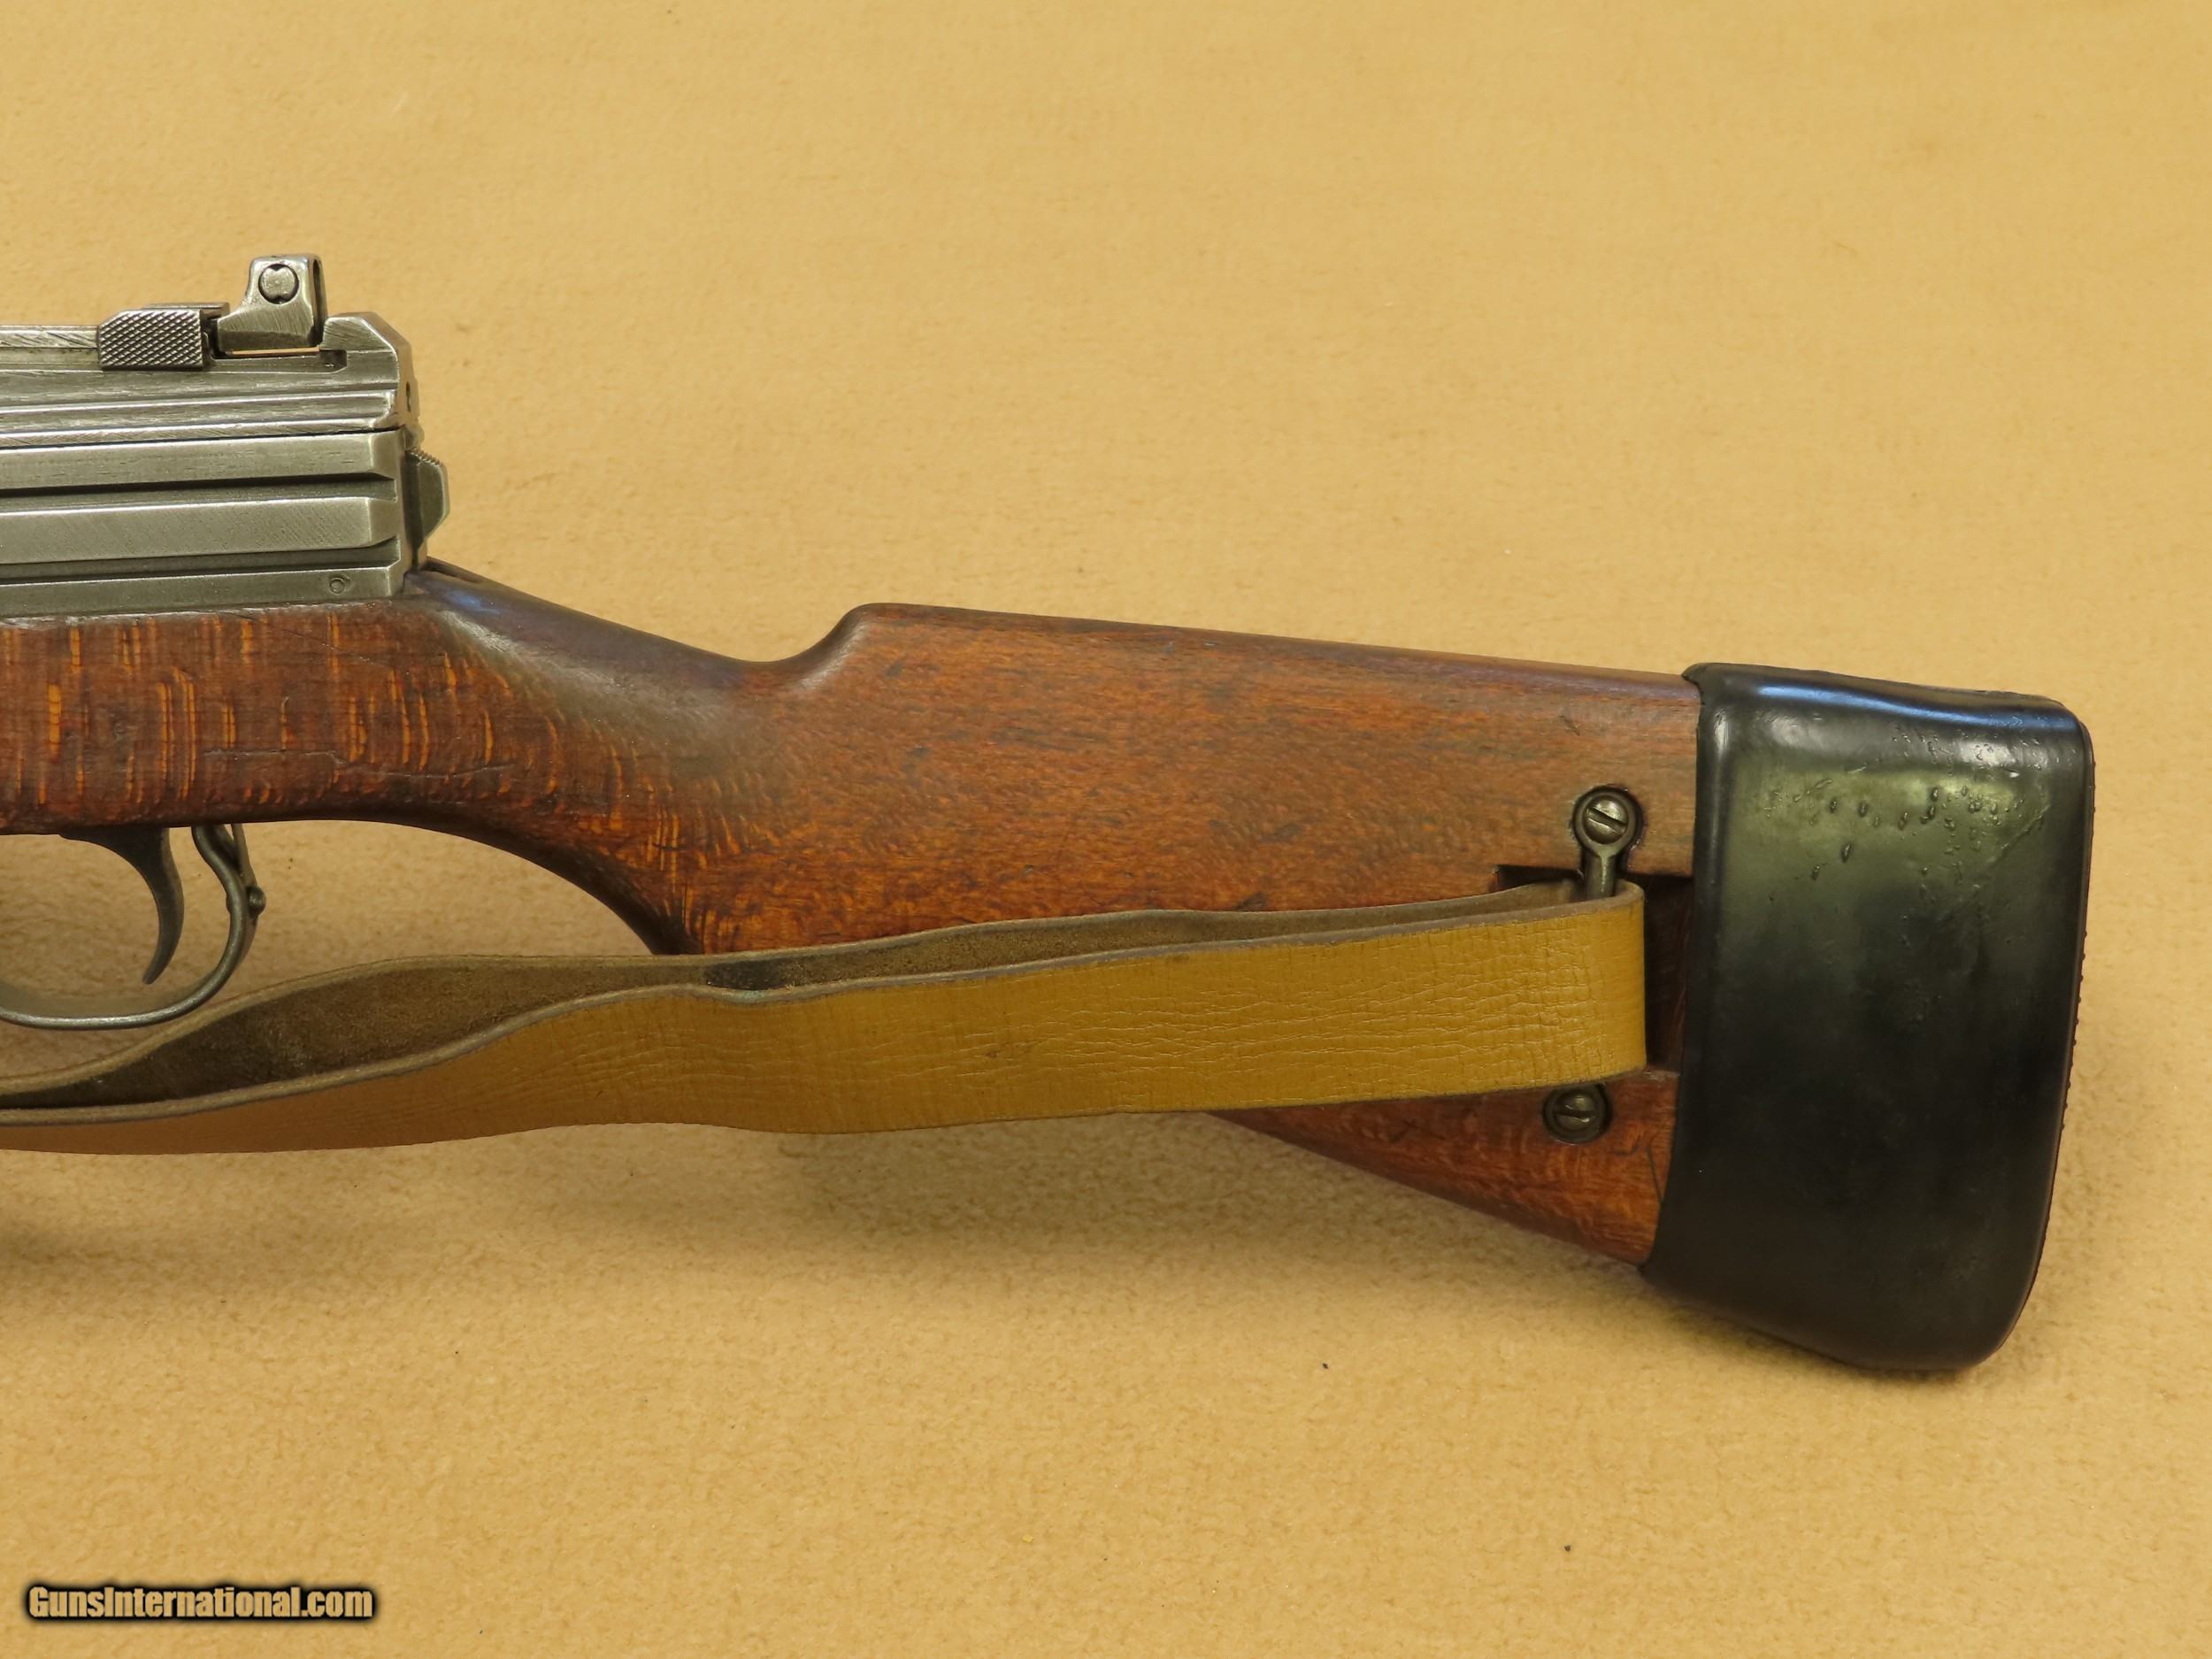 1961-1963 Vintage French MAS Model 49/56 Rifle in 7 62 NATO